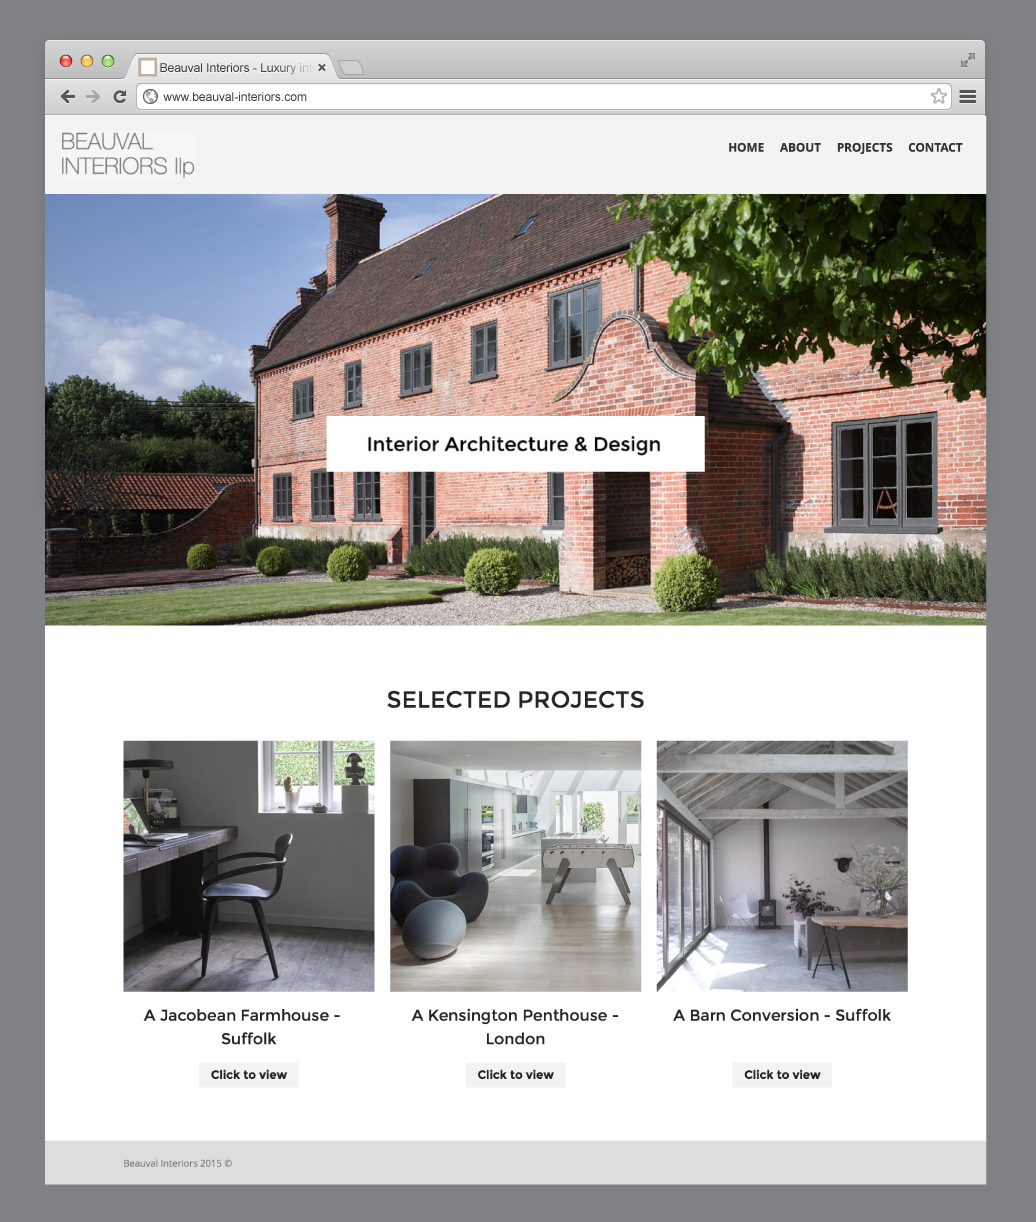 beauval-interiors-site